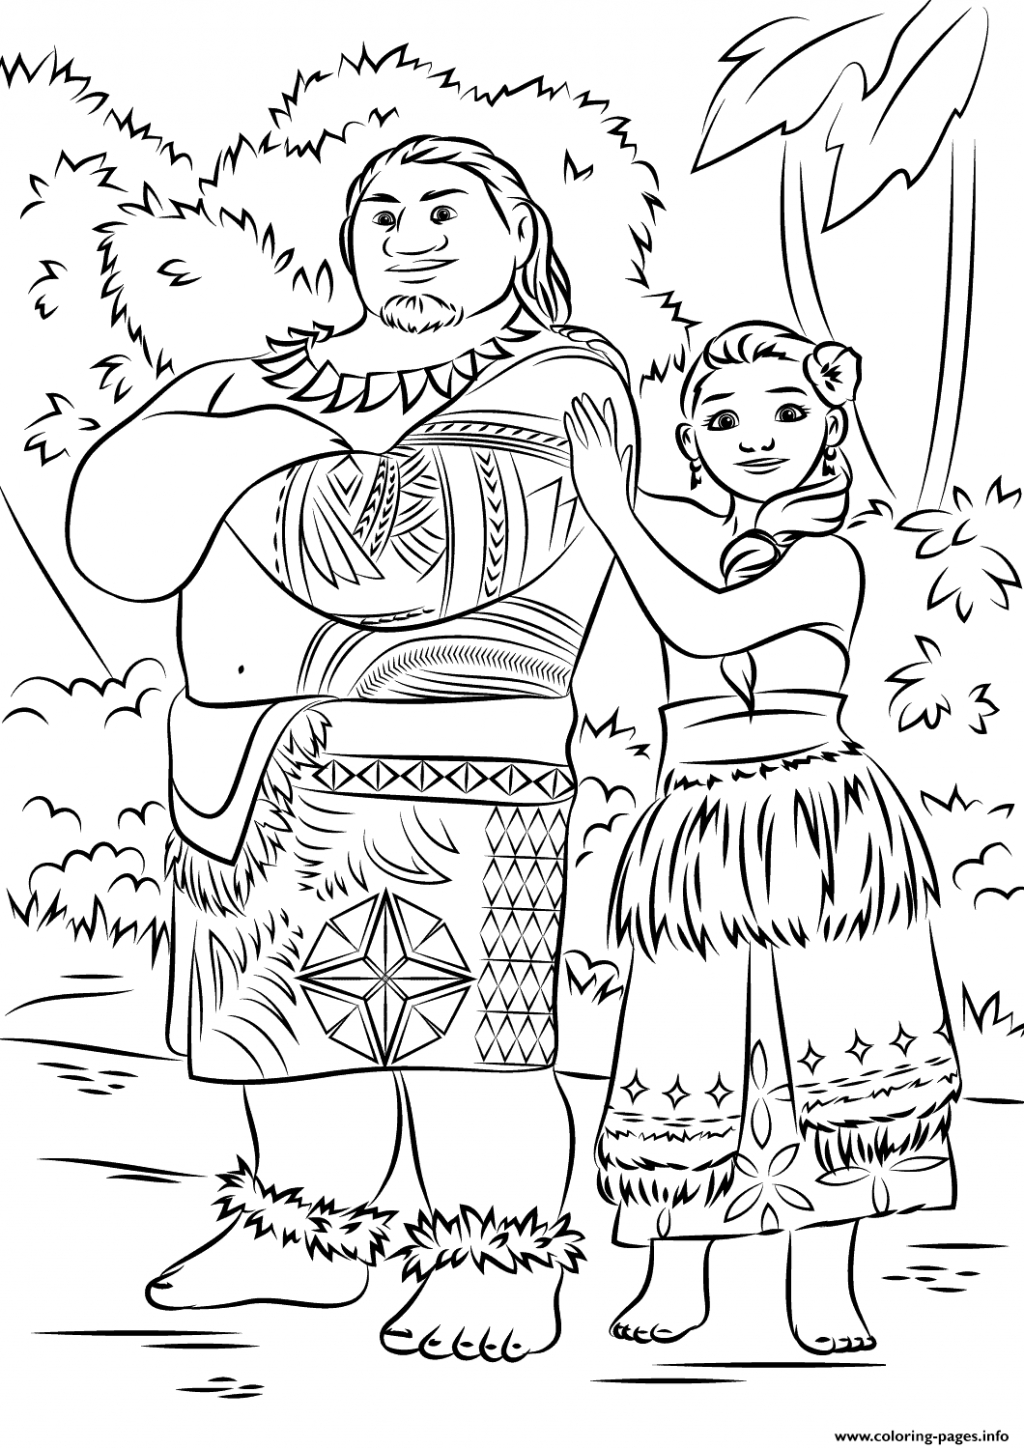 Get This Free Printable Disney Moana Coloring Pages MN58C - Top ... | 1449x1024